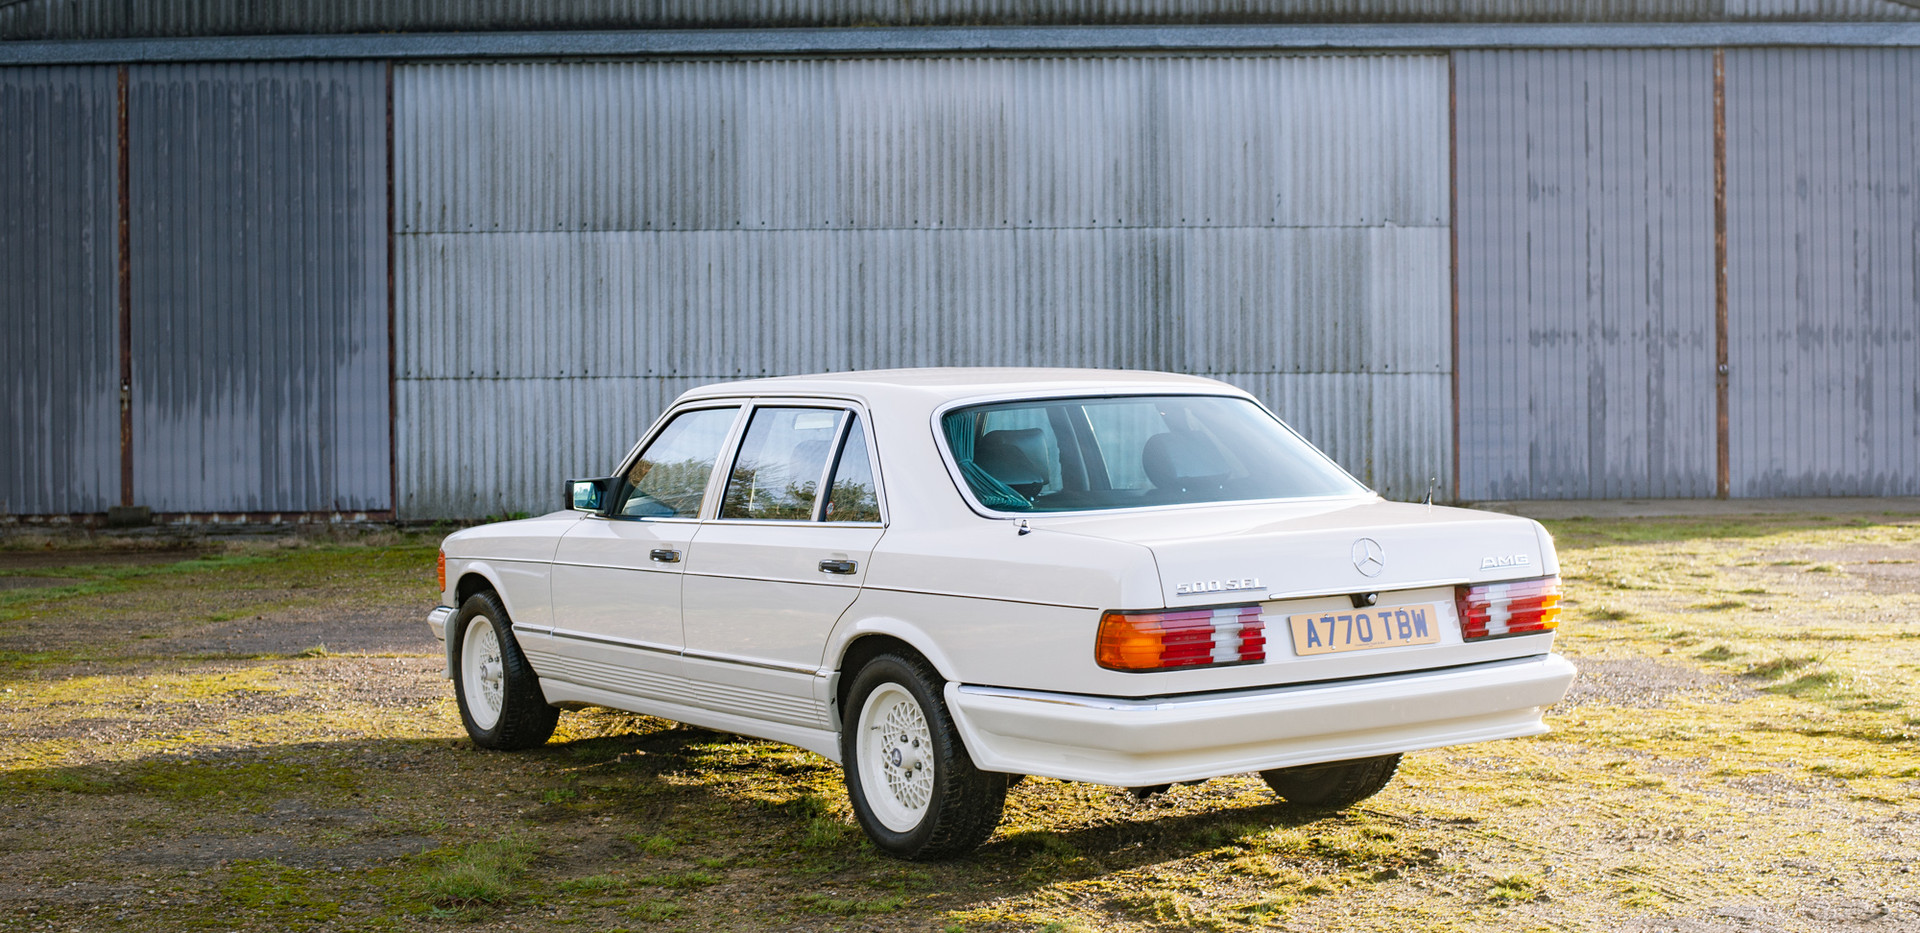 W126 Cream 500SEL for sale uk-5.jpg